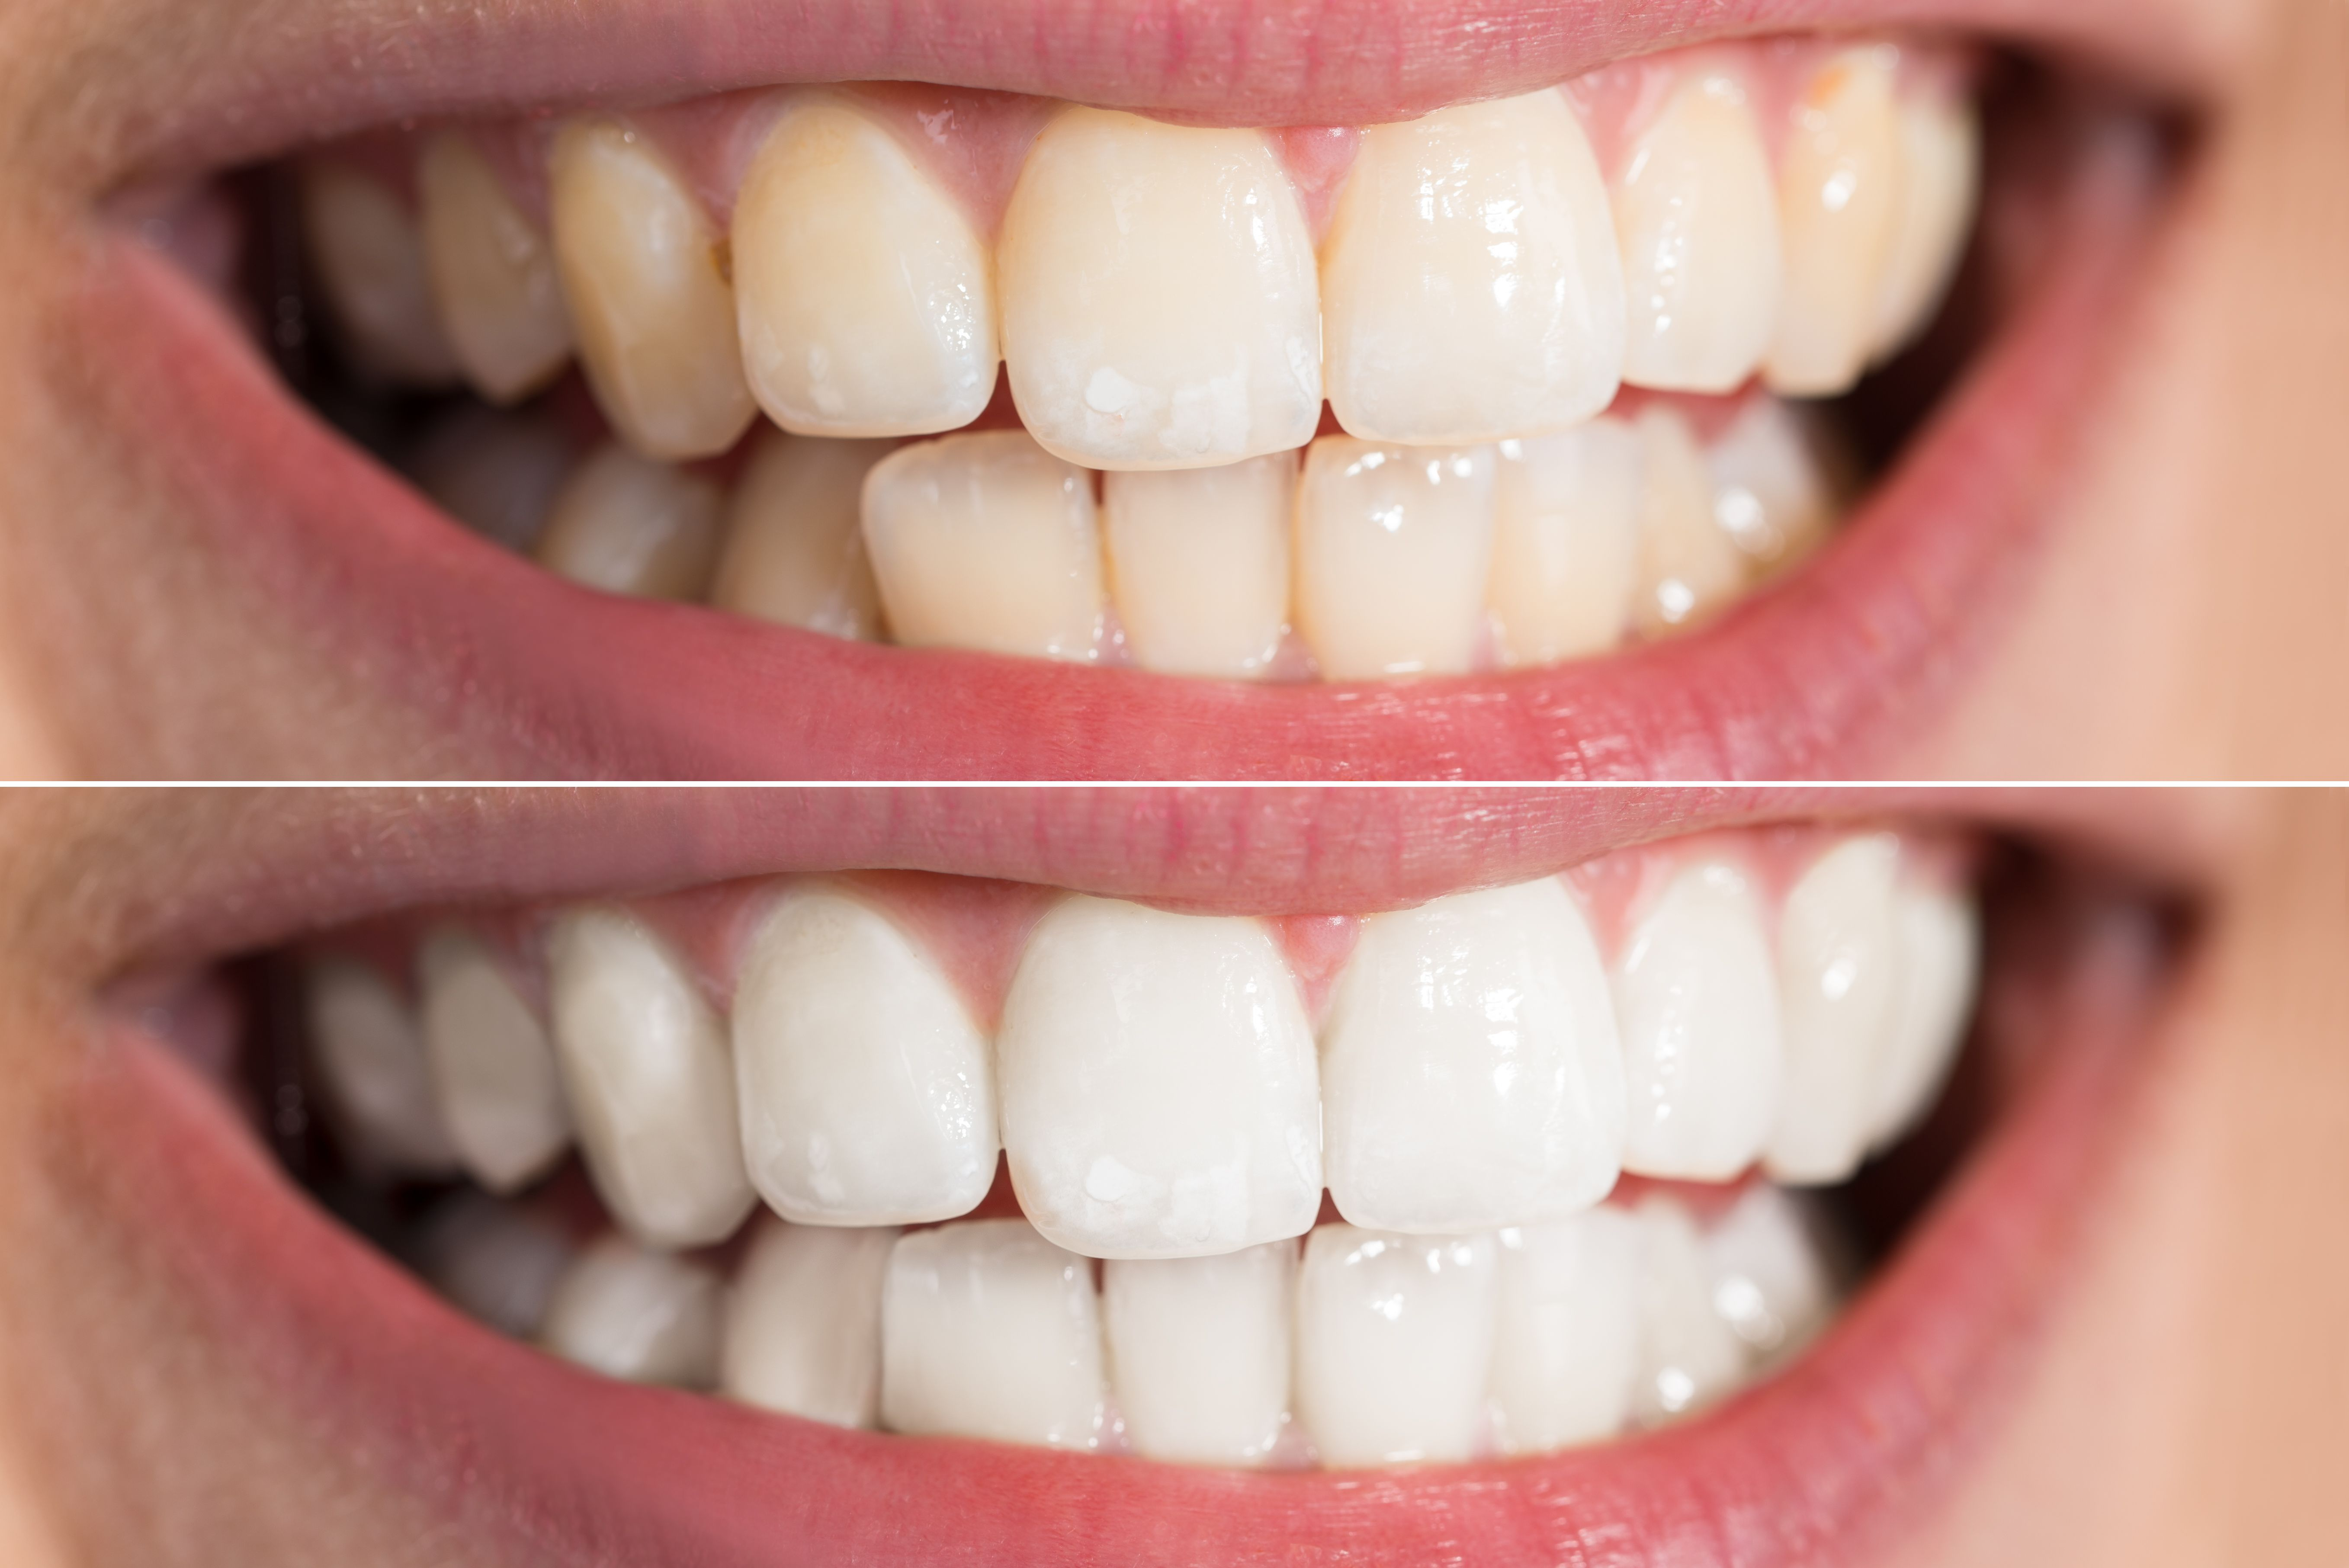 Teeth Whitening Is It Safe And Which At Home Kits Work